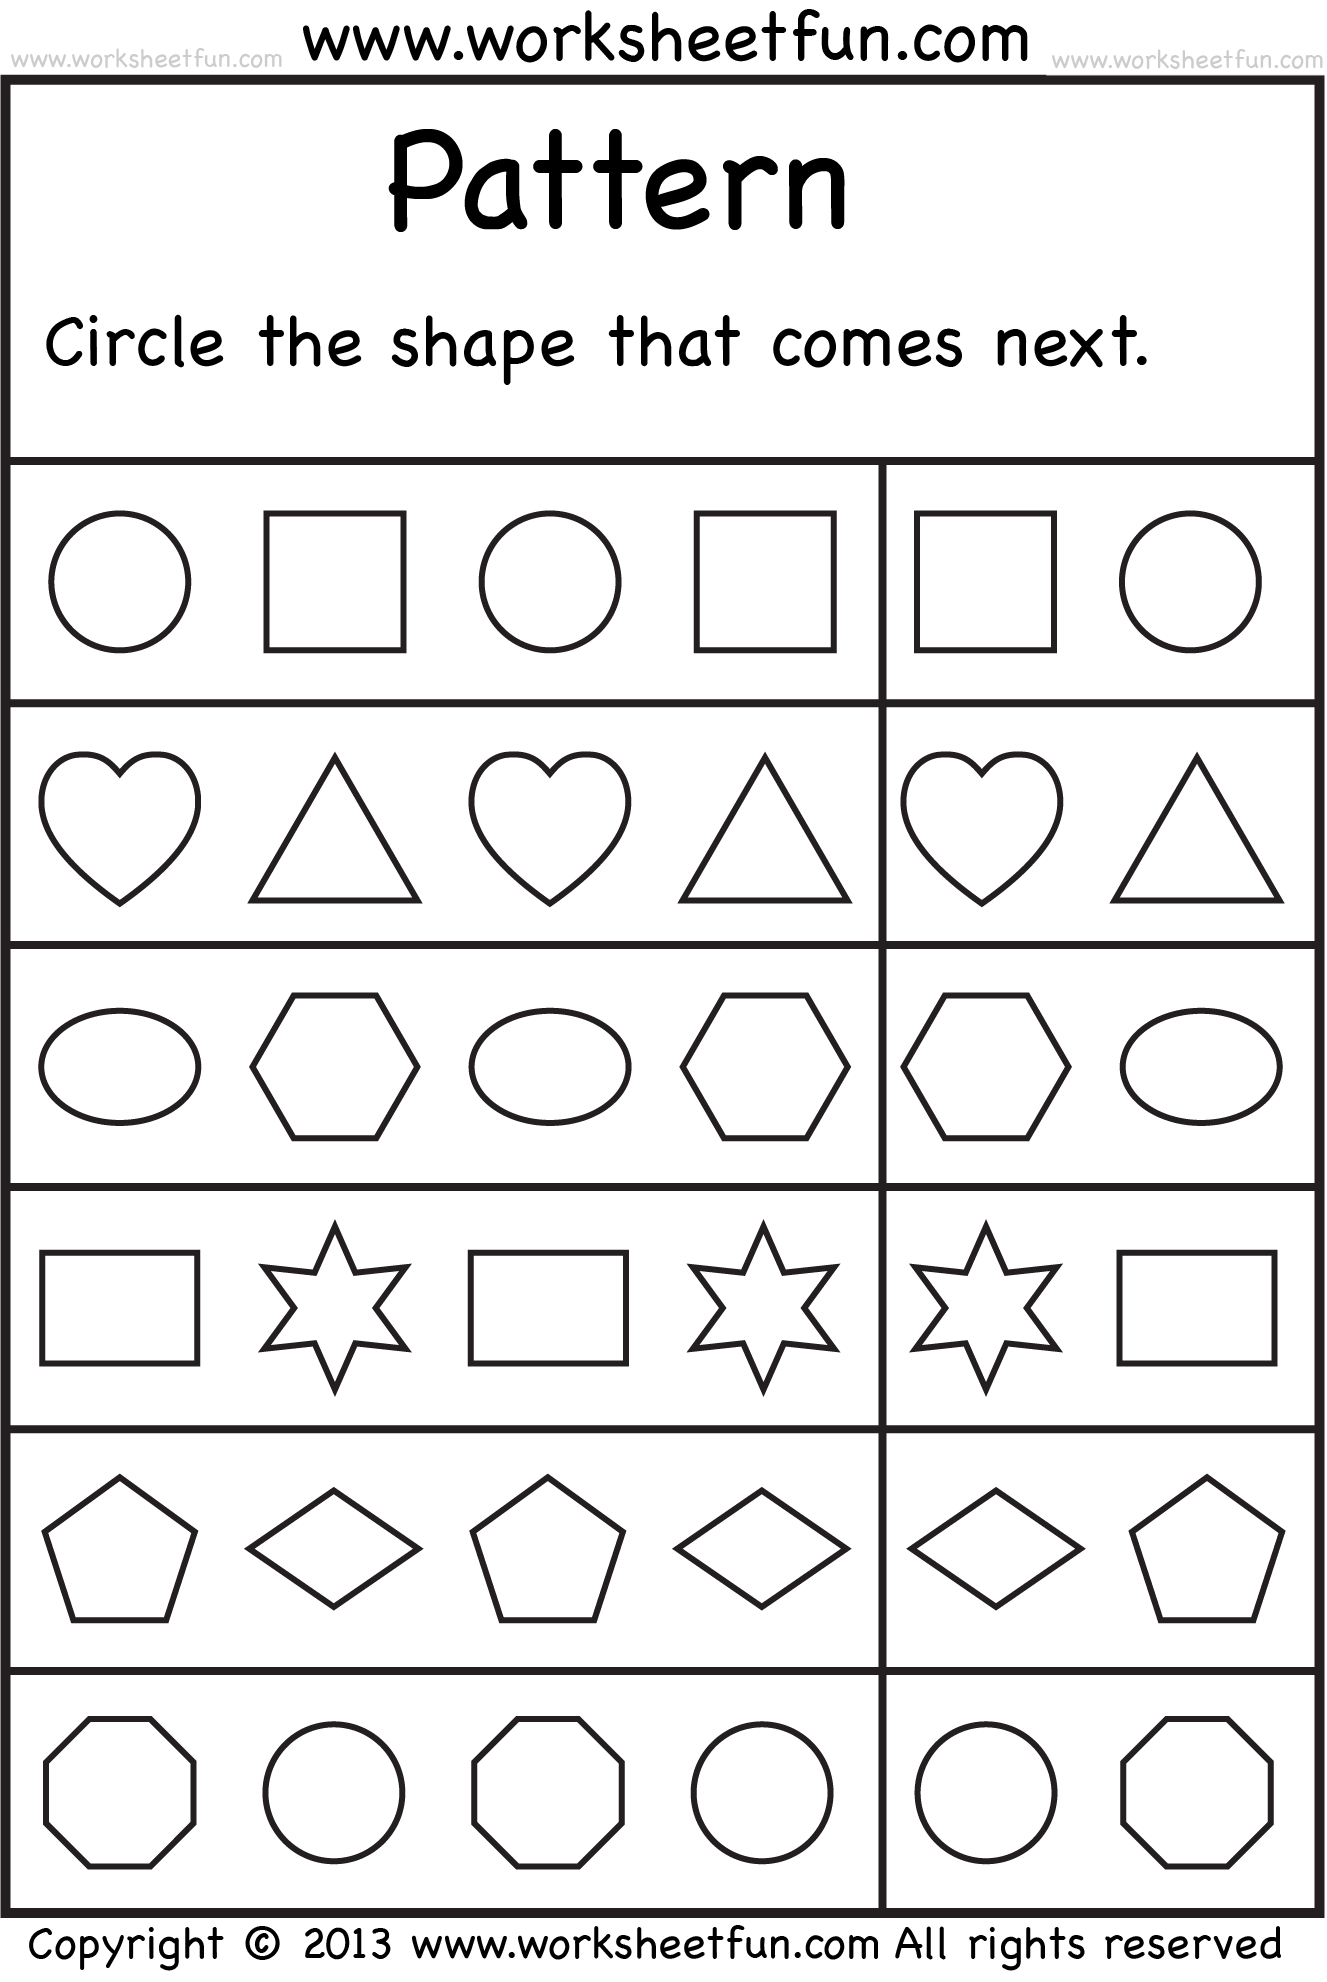 Weirdmailus  Inspiring  Images About School Worksheets On Pinterest  Number Words  With Inspiring  Images About School Worksheets On Pinterest  Number Words Alphabet Worksheets And Free Printable Kindergarten Worksheets With Adorable Even Odd Worksheet Also Finding The Slope Of A Line Worksheet With Graphing In Addition Grade  Science Worksheets And Learning To Write Worksheets For Kindergarten As Well As Number Review Worksheets Additionally Verb Worksheets For Rd Grade From Pinterestcom With Weirdmailus  Inspiring  Images About School Worksheets On Pinterest  Number Words  With Adorable  Images About School Worksheets On Pinterest  Number Words Alphabet Worksheets And Free Printable Kindergarten Worksheets And Inspiring Even Odd Worksheet Also Finding The Slope Of A Line Worksheet With Graphing In Addition Grade  Science Worksheets From Pinterestcom